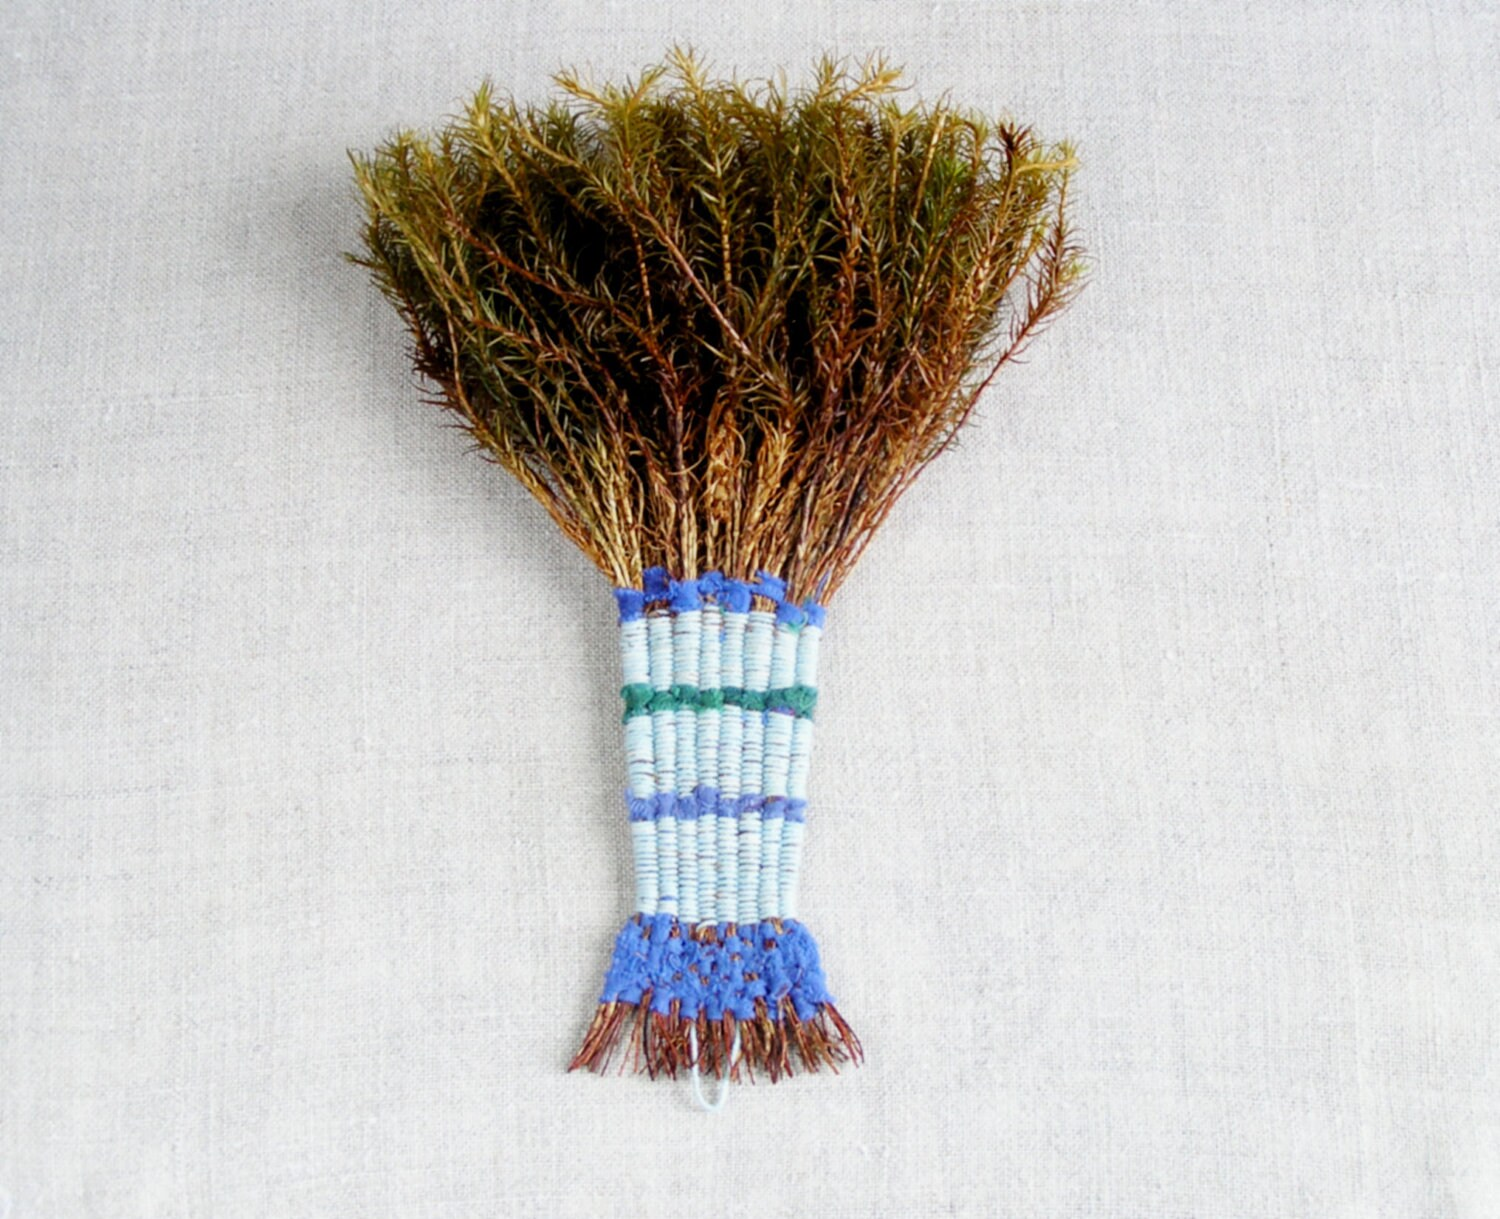 rustic wall decor - whisk broom  - nature eco decor striped in blue green - Birribe